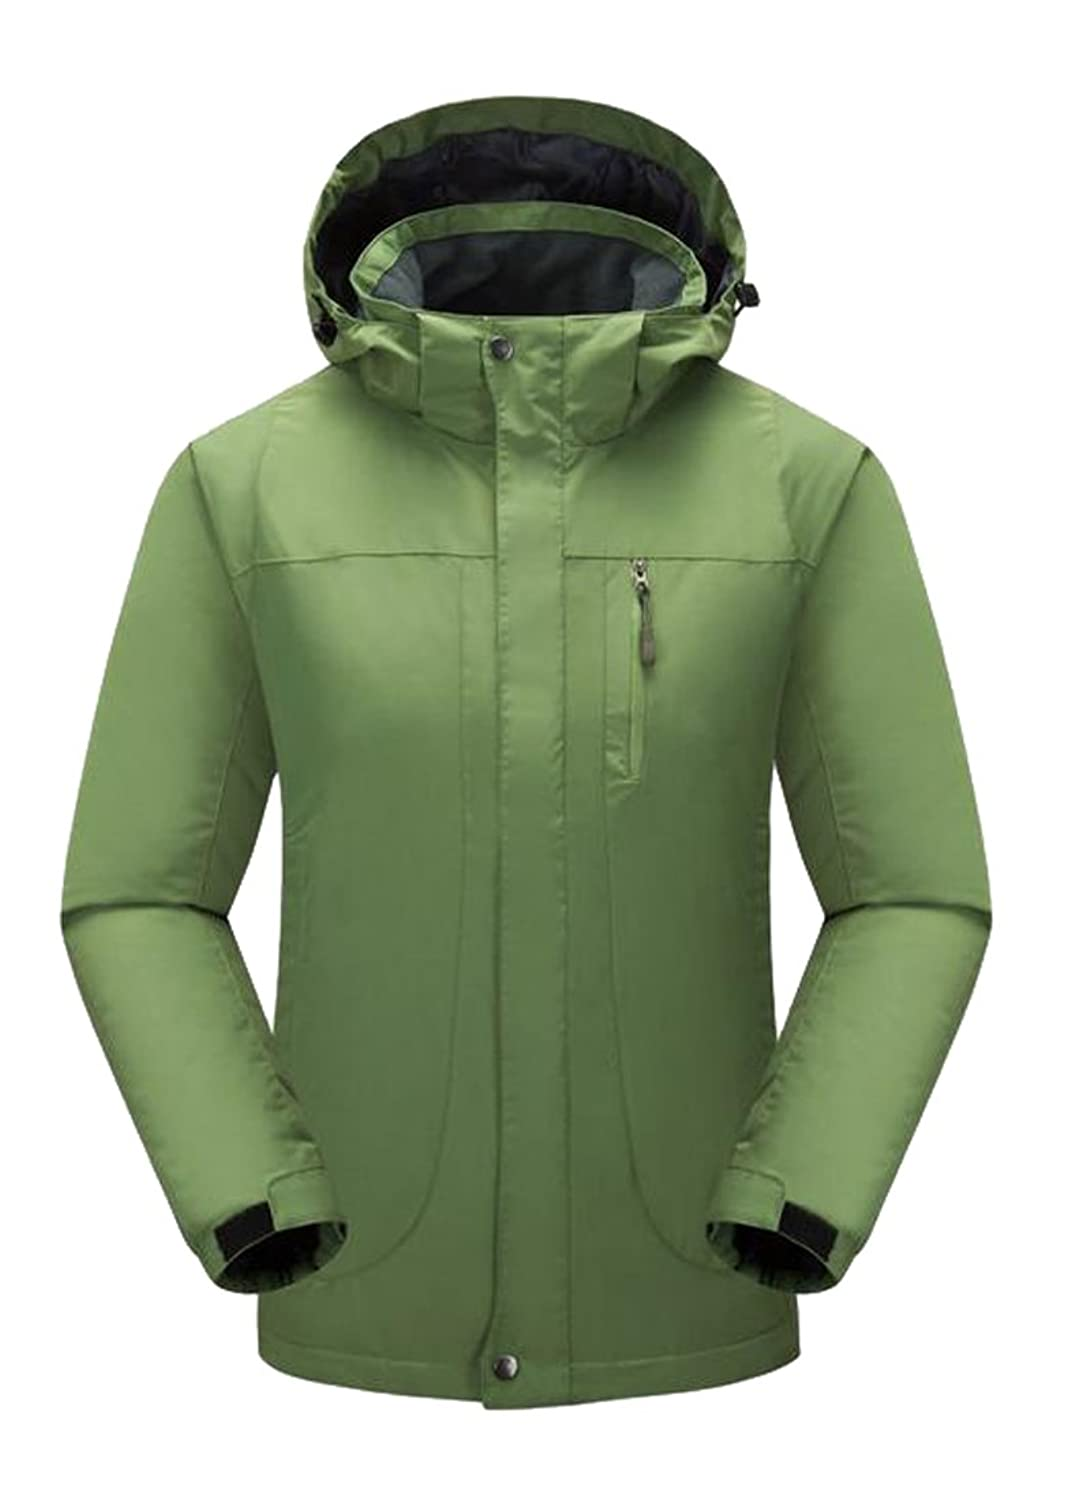 Abetteric Women's Windproof Hooded Outdoor Ski Jacket Mountain Jacket Army Green 2XL